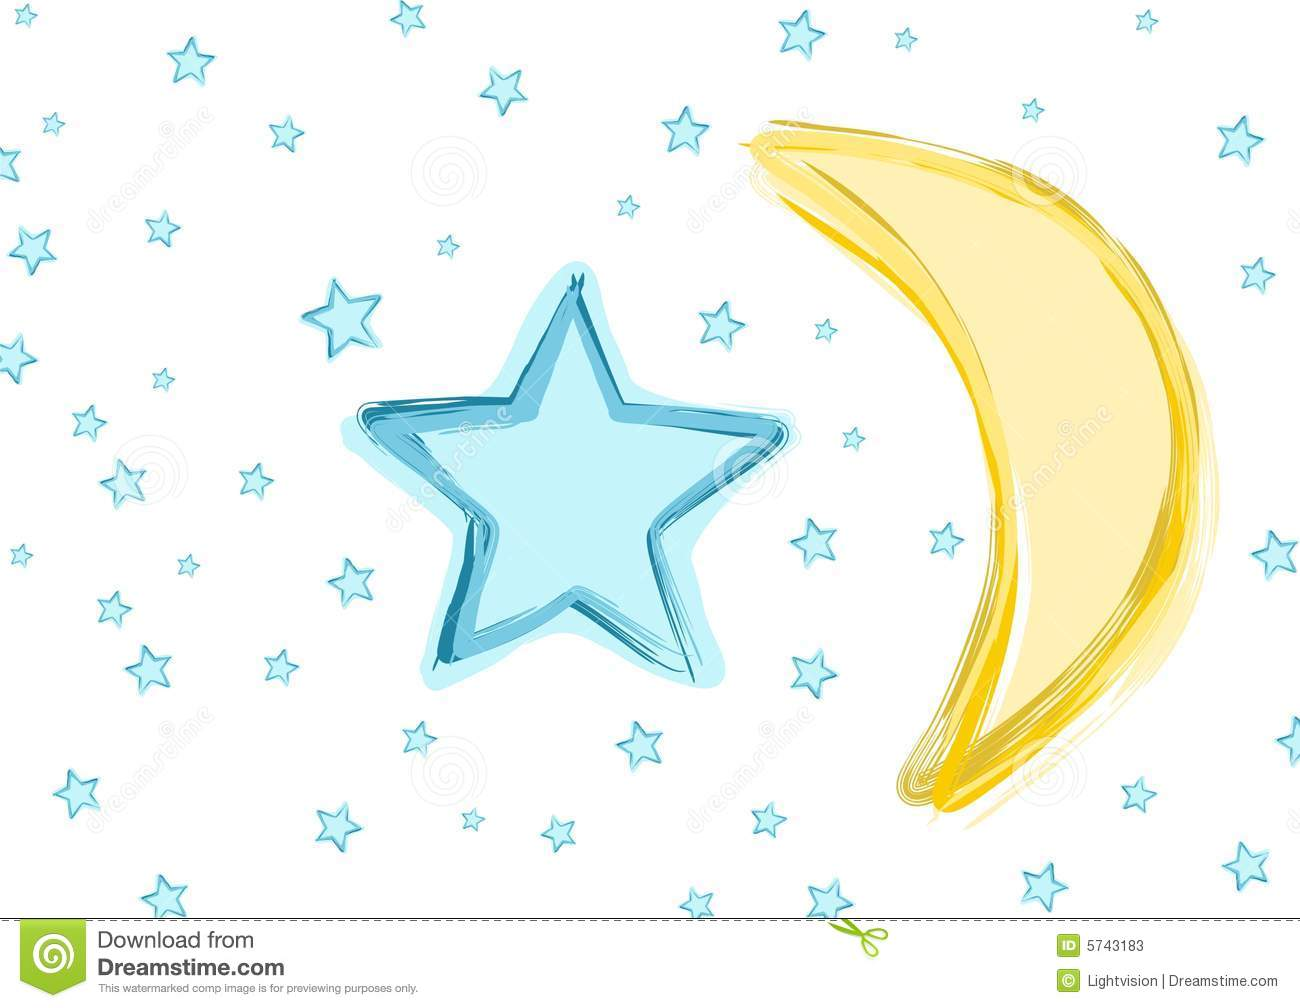 Baby Moon and stars stock vector. Illustration of star.